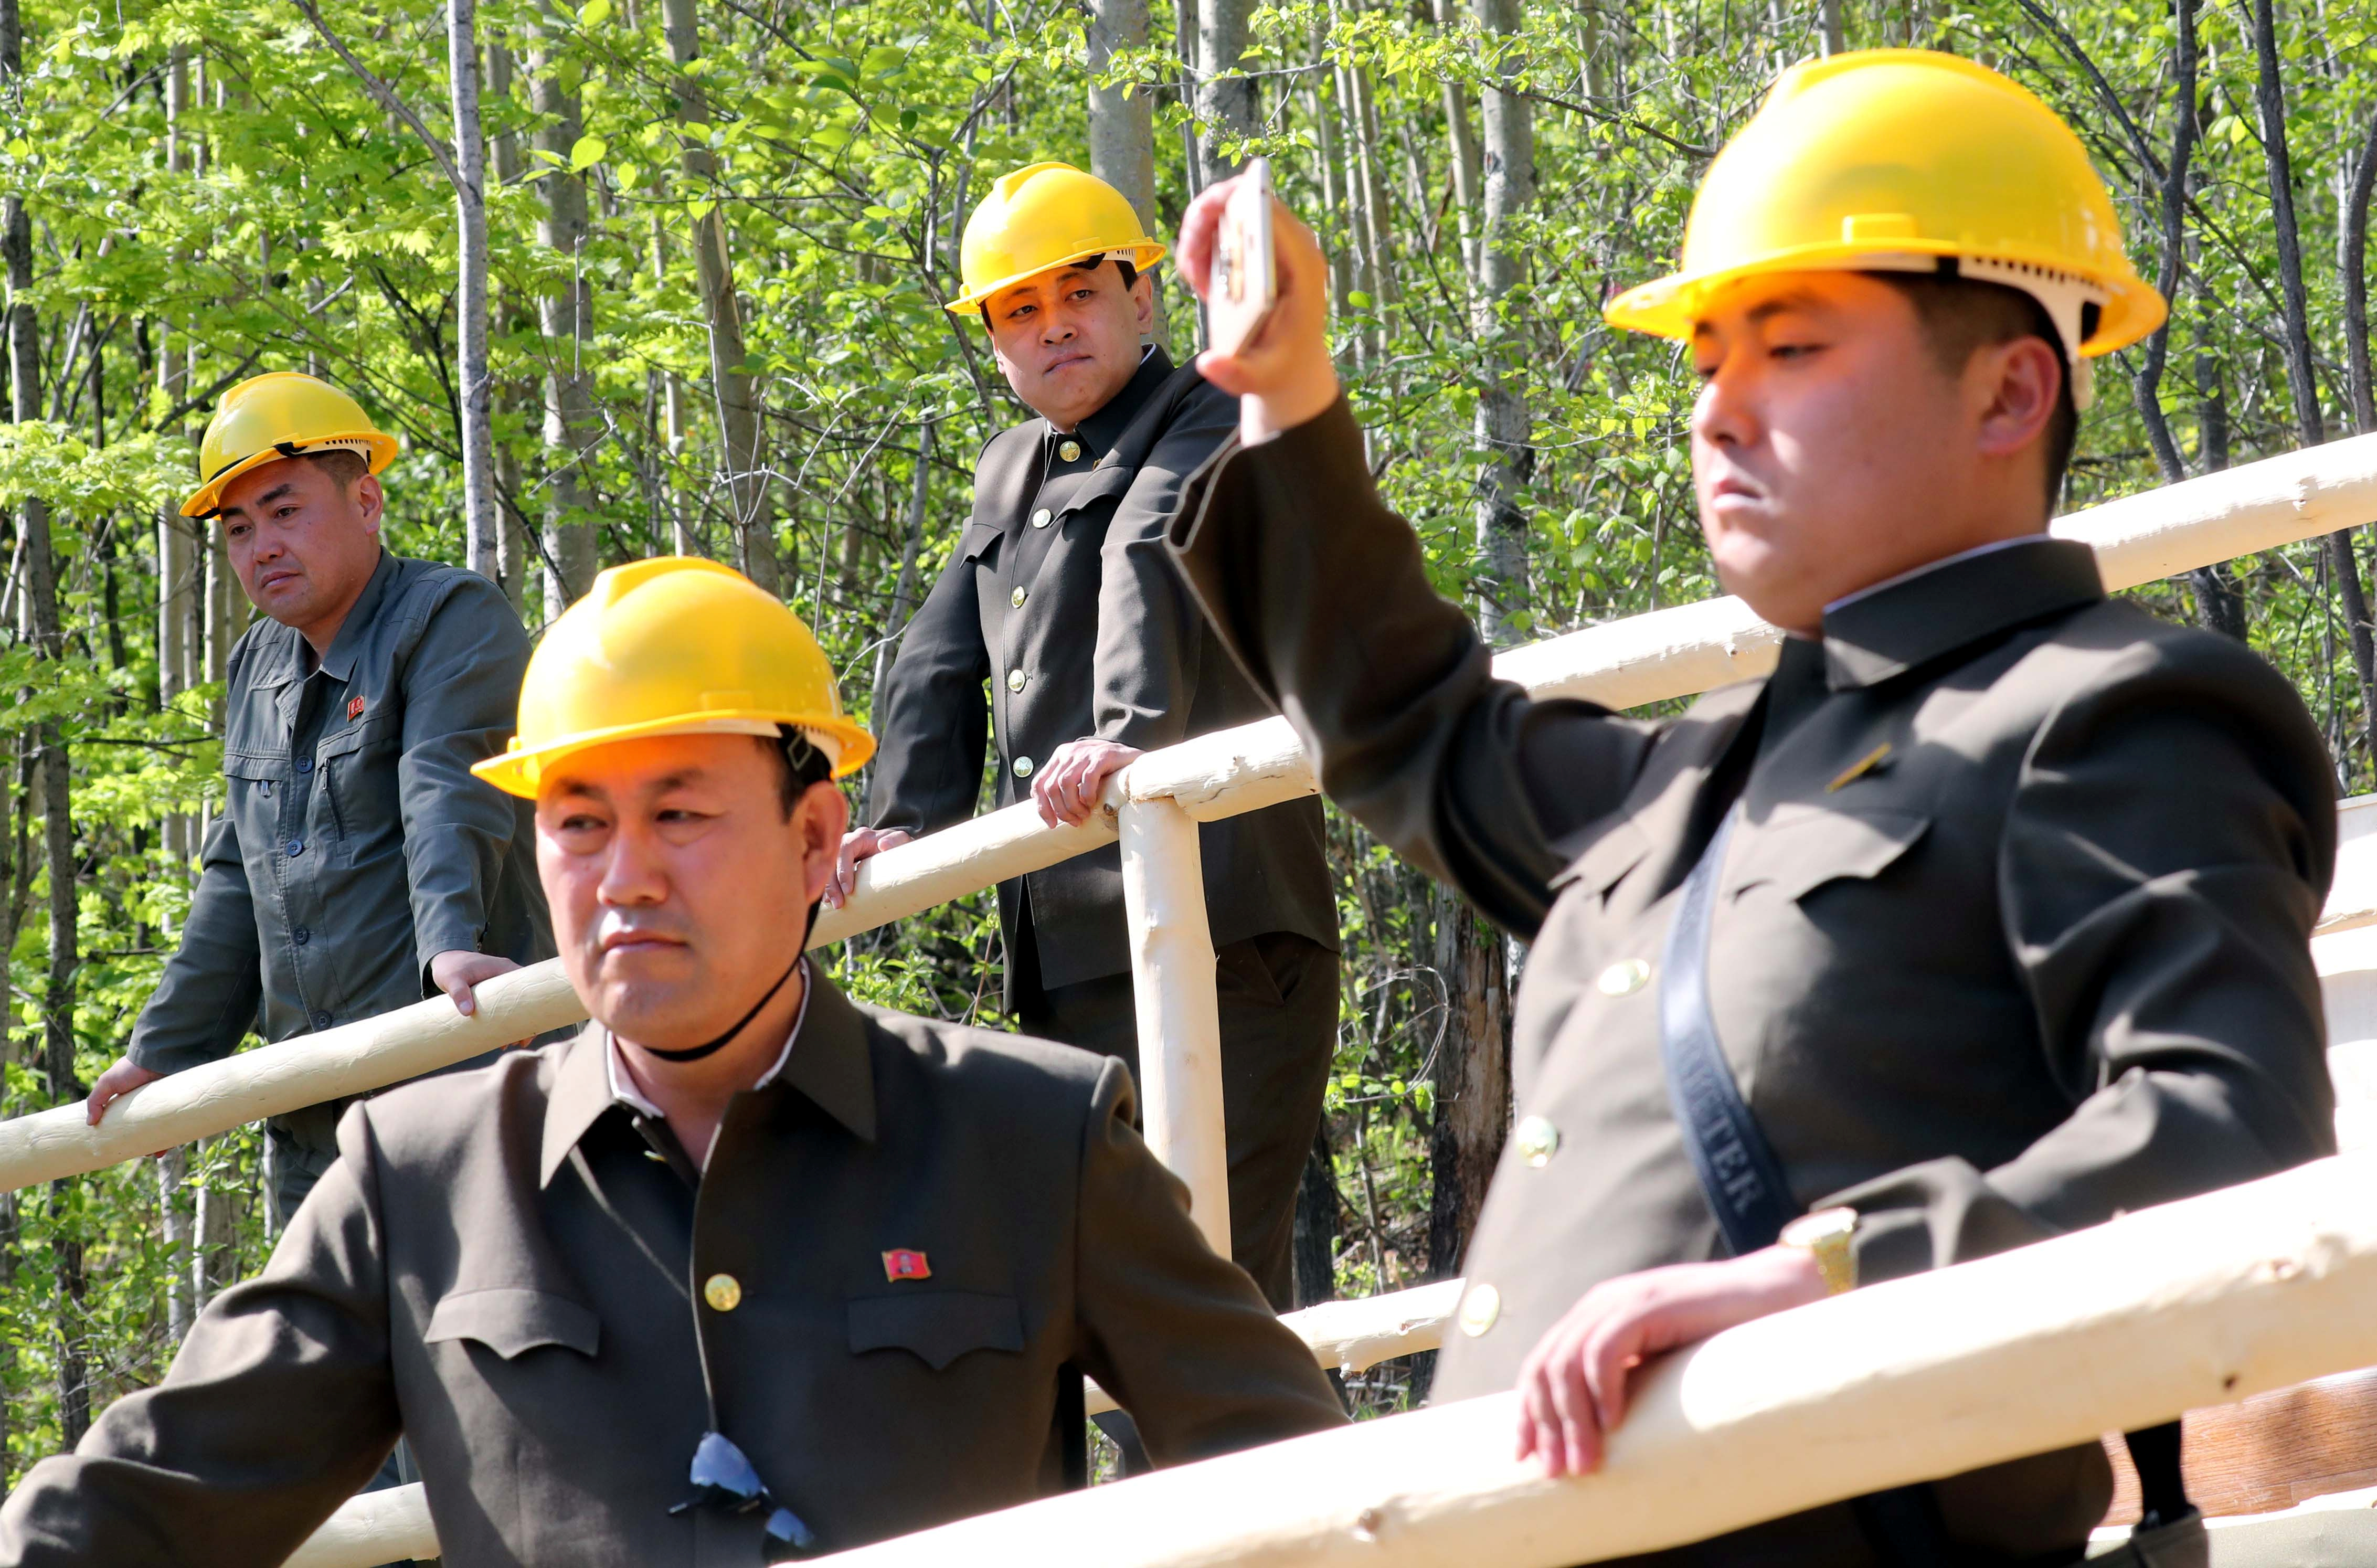 North Korean officials watch the dismantlement process of Punggye-ri nuclear test ground in Punggye-ri, North Hamgyong Province, North Korea May 24, 2018. Picture taken May 24, 2018.